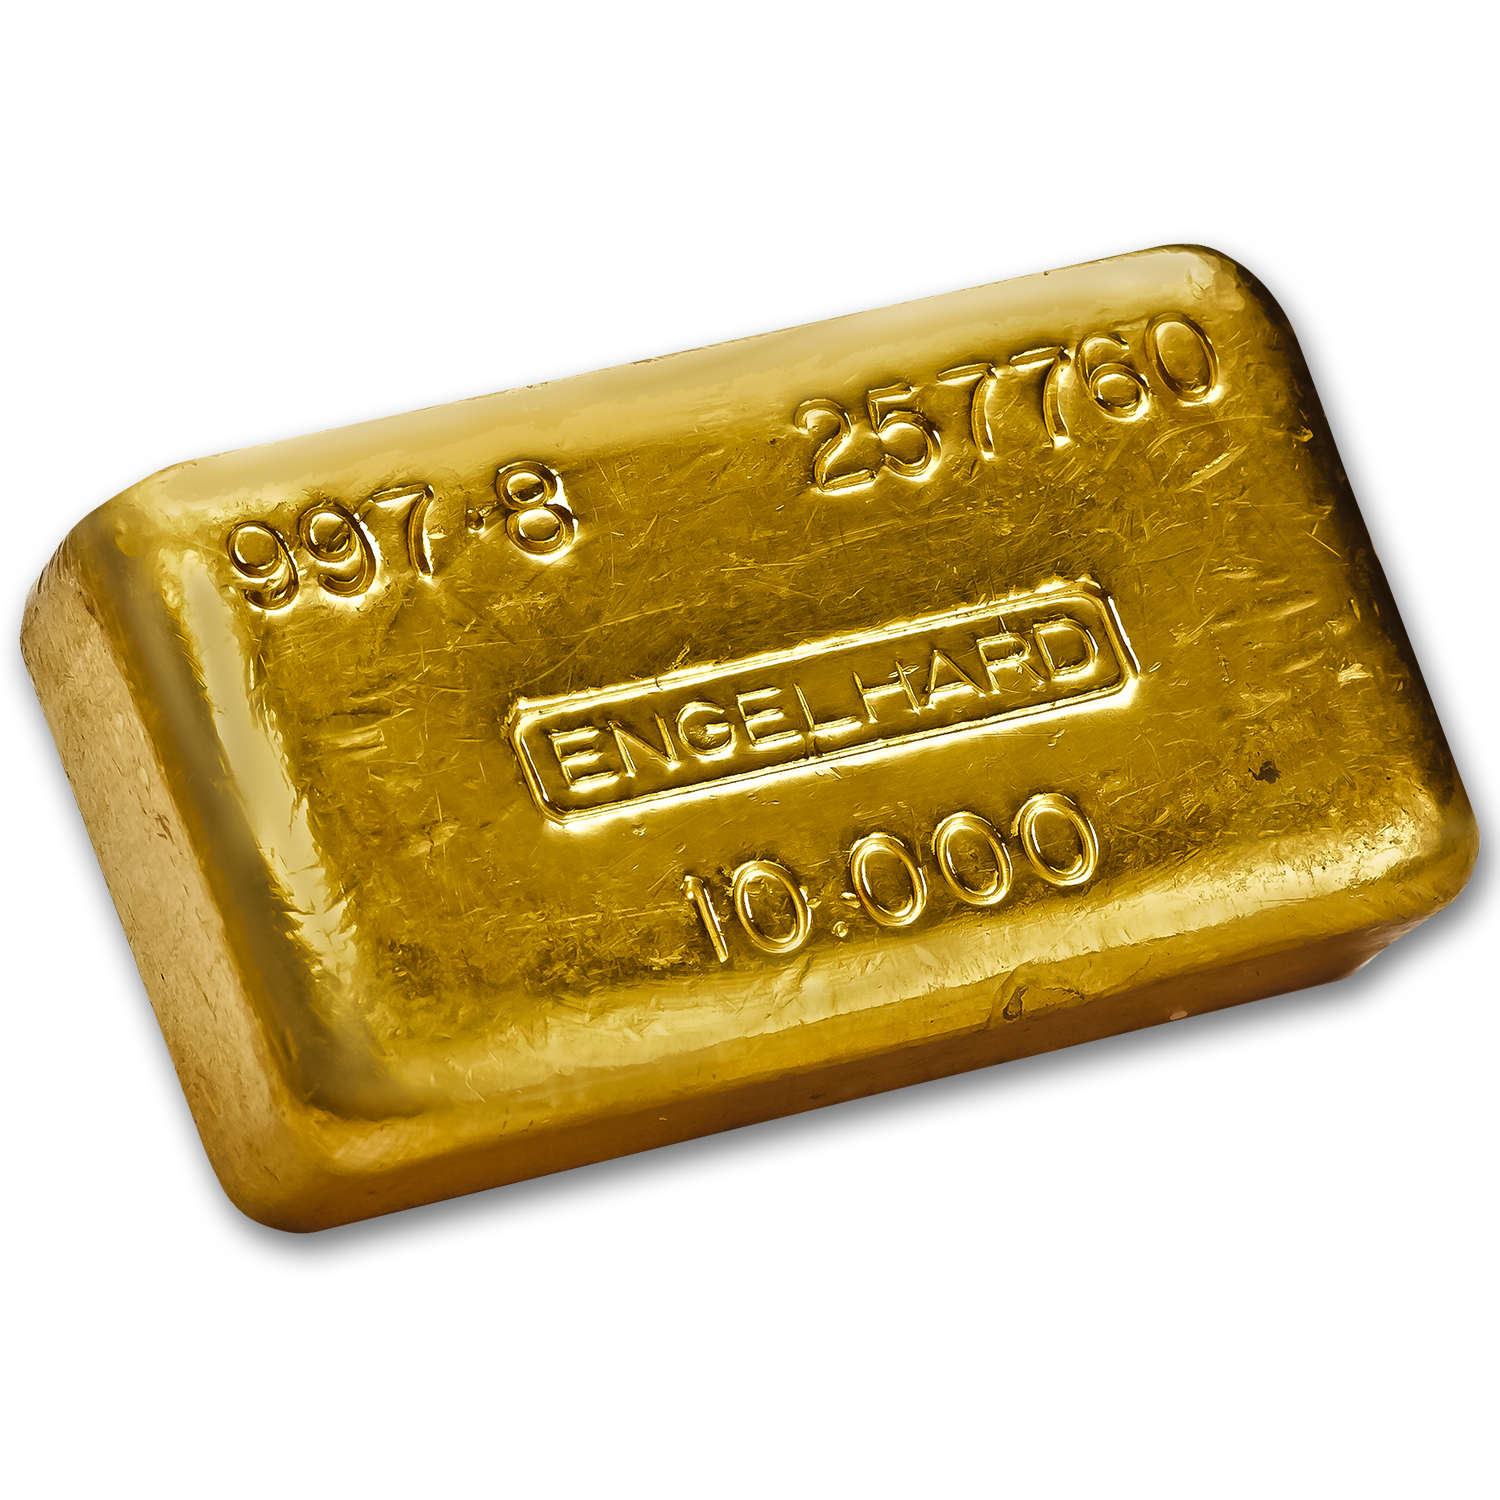 10 oz Gold Bar - Engelhard (Poured/Loaf Style, 997.8 Fine)